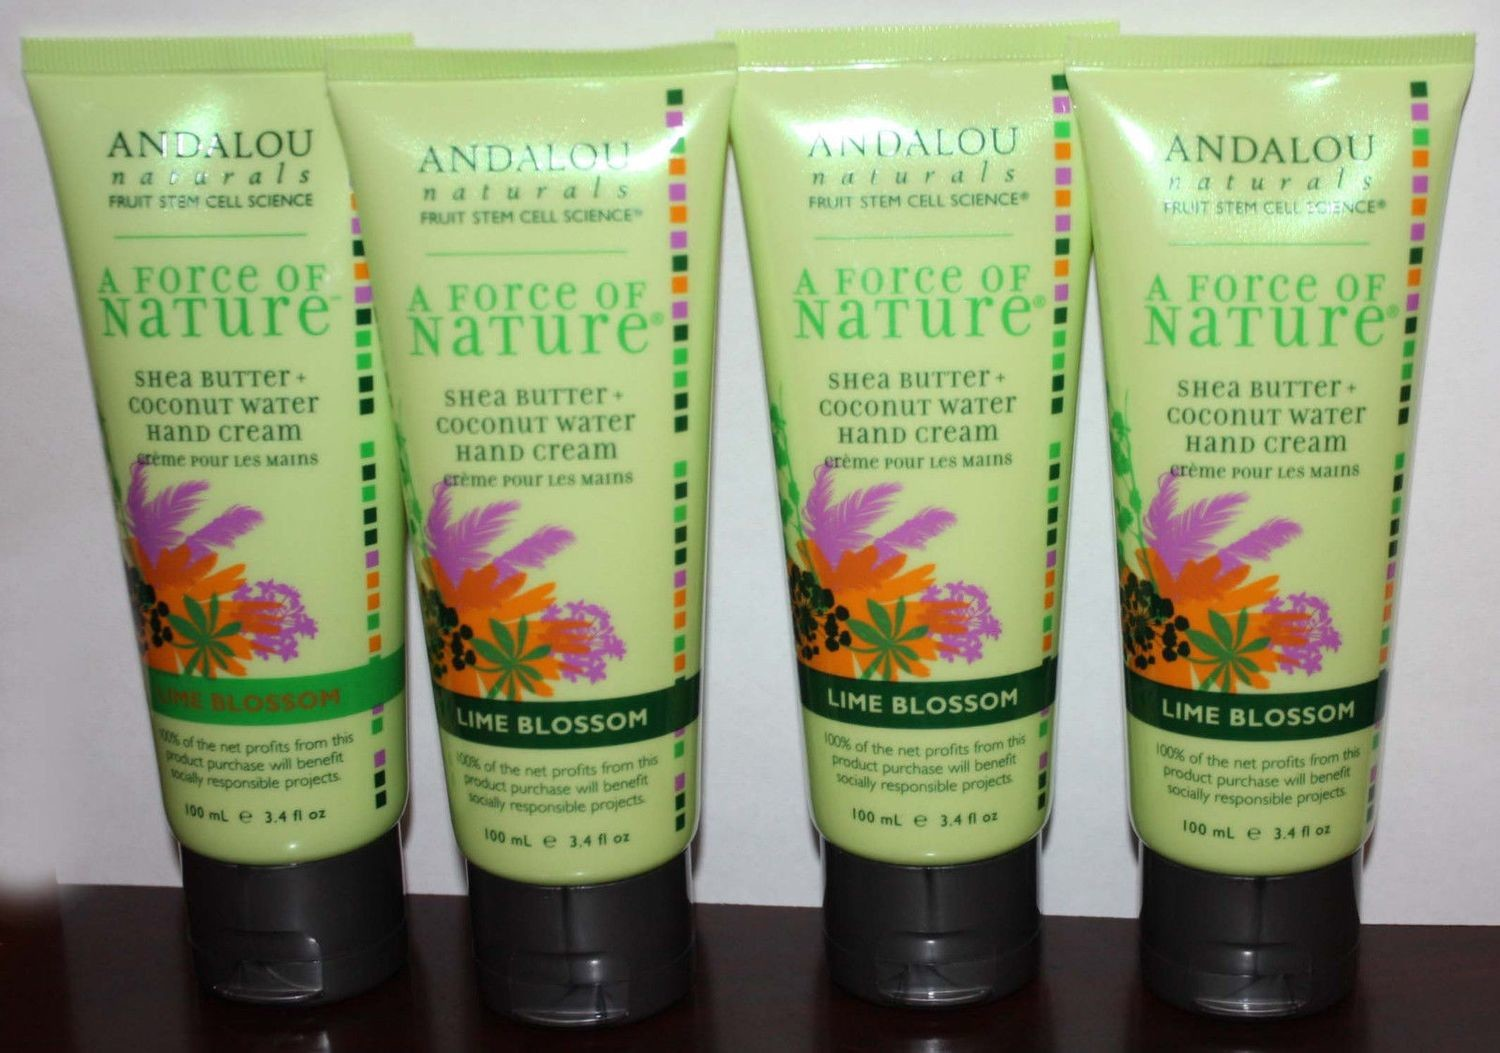 Lot Of 4 Andalou Naturals A FORCE OF NATURE Lime Blossom Hand Cream 3.4 oz Each